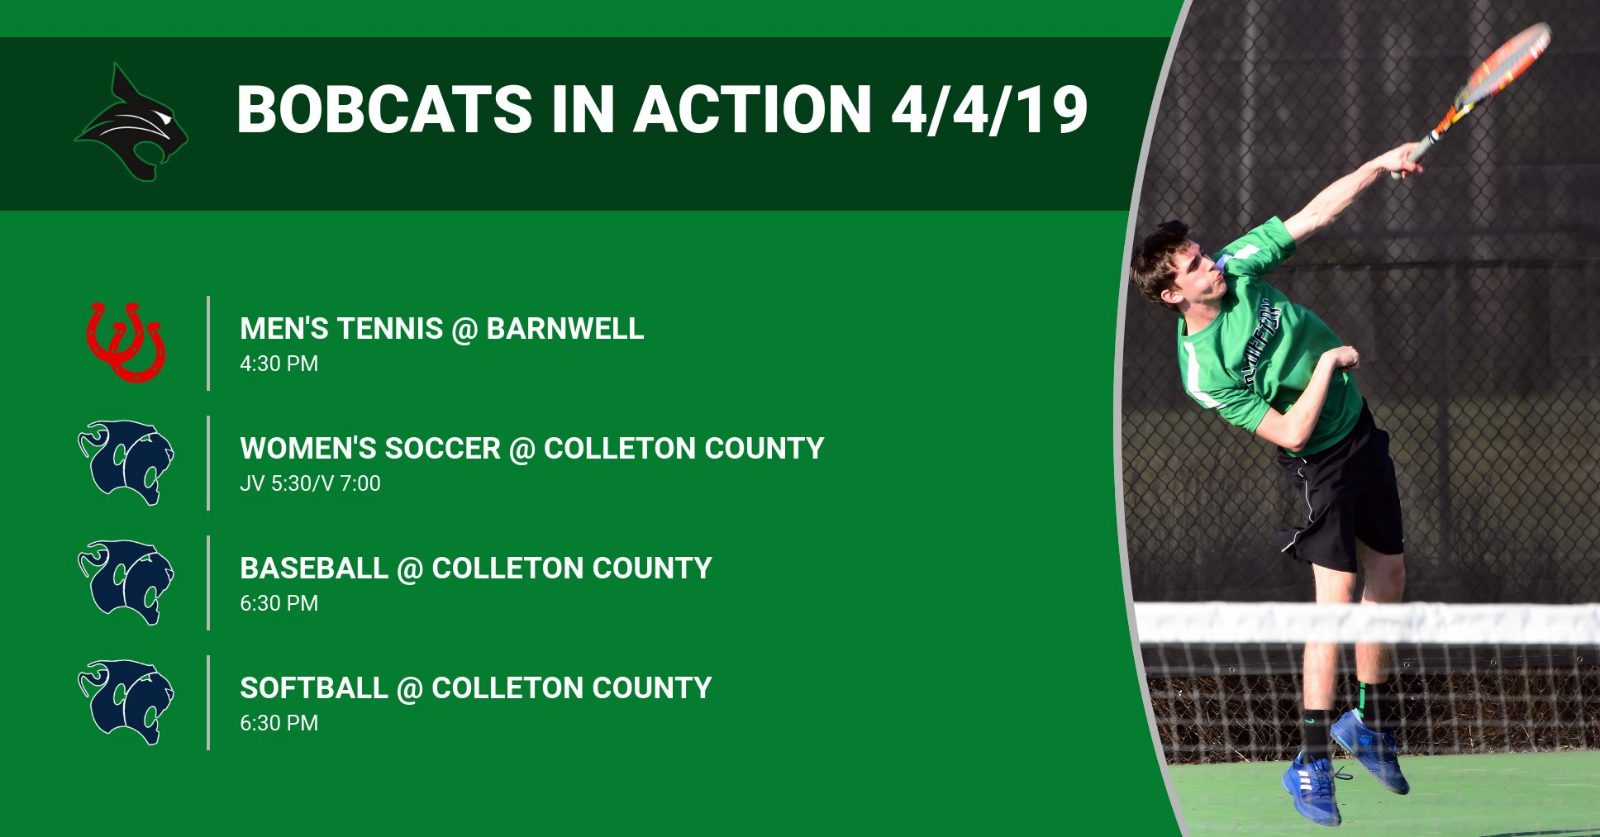 Bobcats in Action 4/4/19